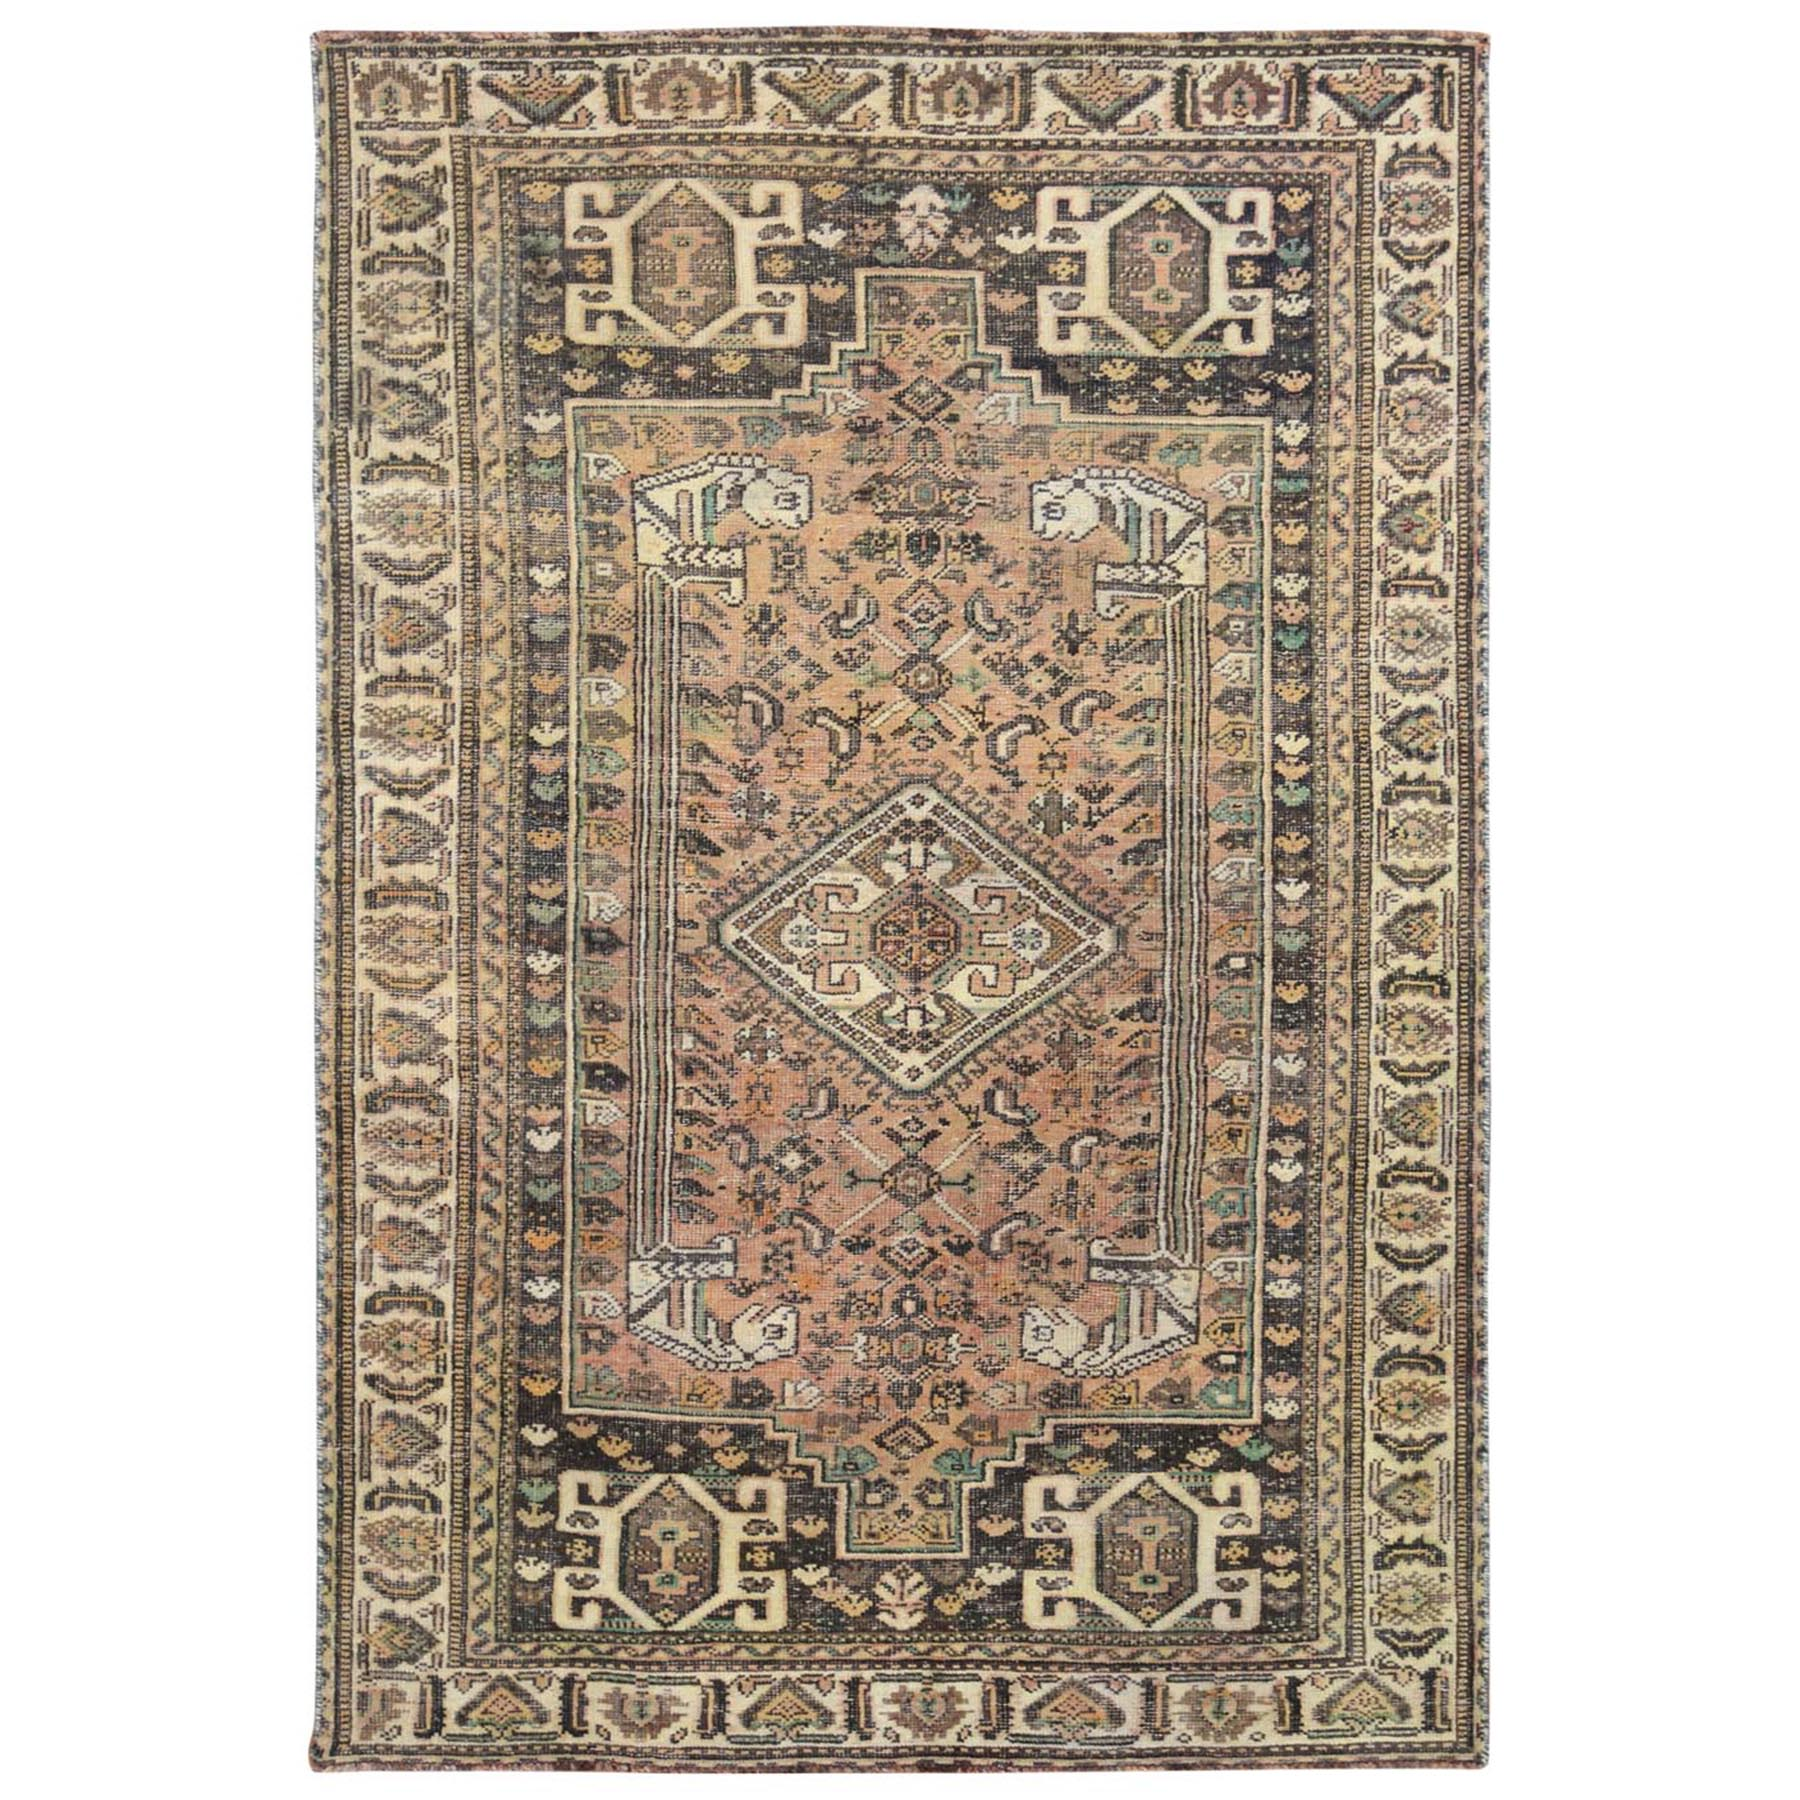 "5'4""x8'3"" Semi Antique Tan Color Persian Shiraz Hand Knotted Bohemian Clean Natural Wool Cropped Thin Oriental Rug"